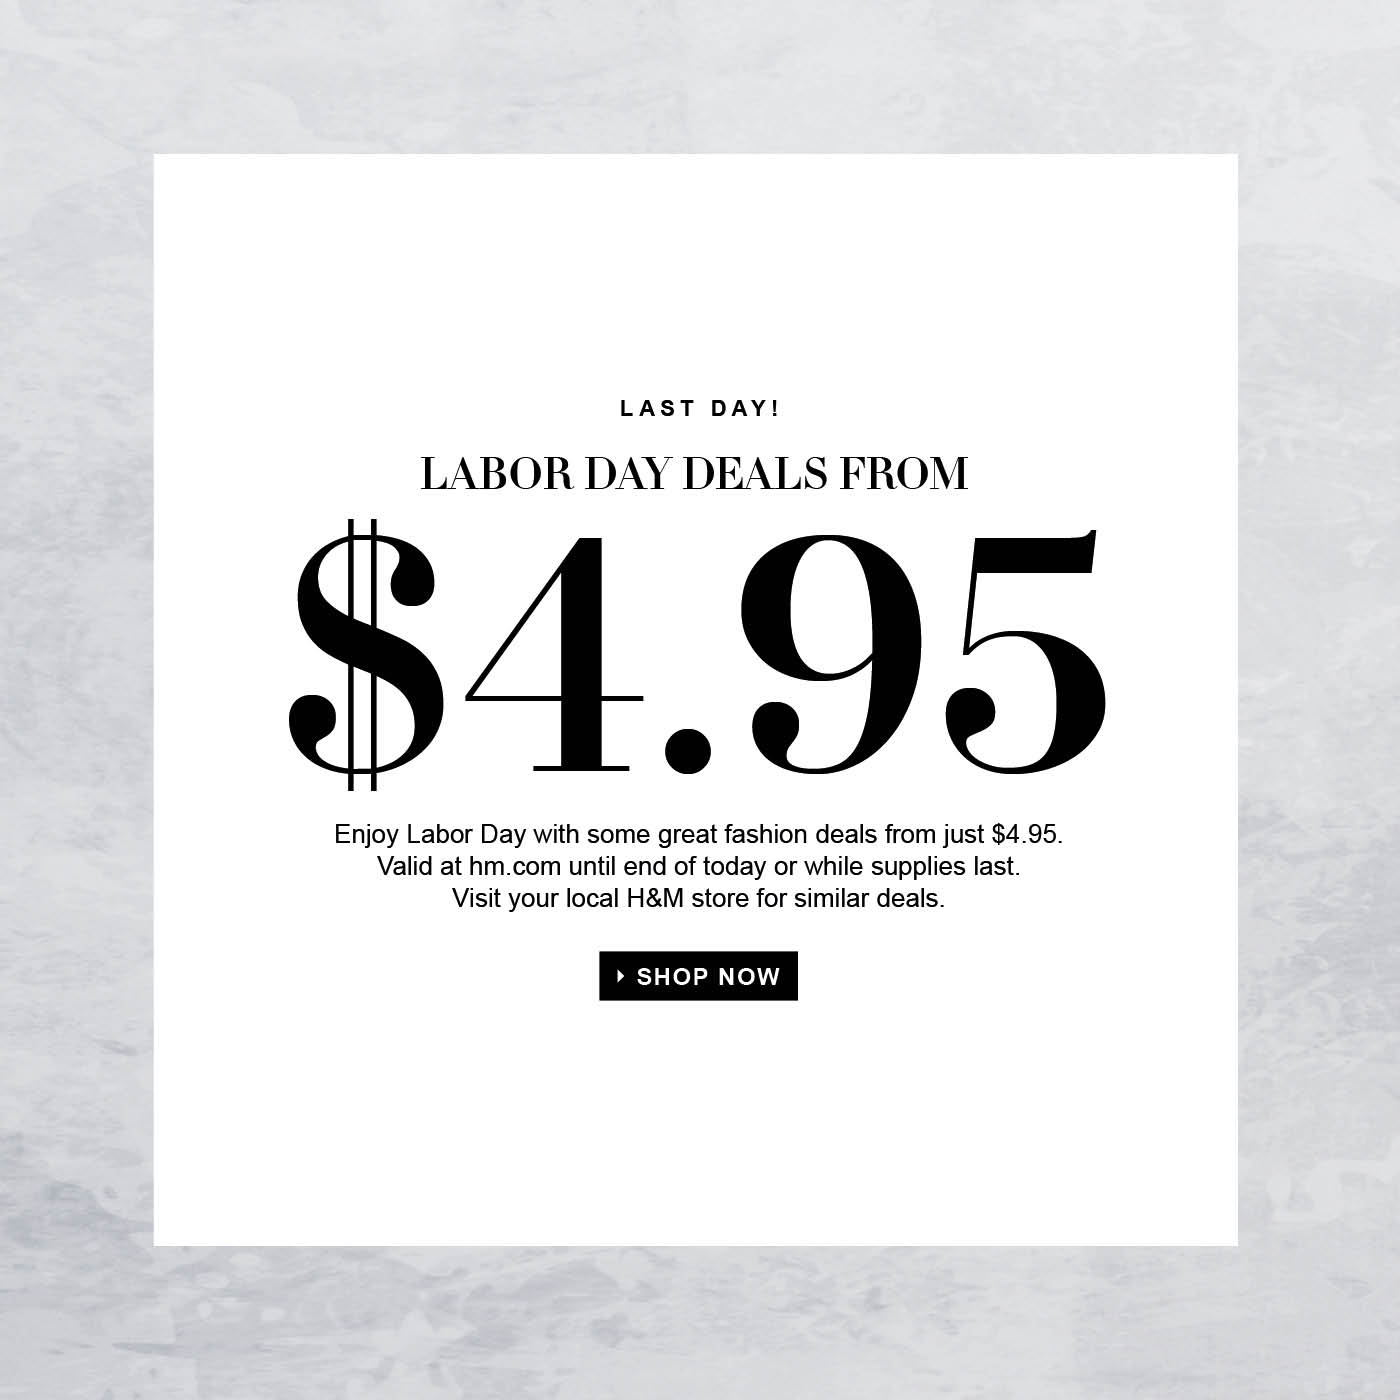 H M Last Day To Shop Labor Day Deals From 4 95 Milled